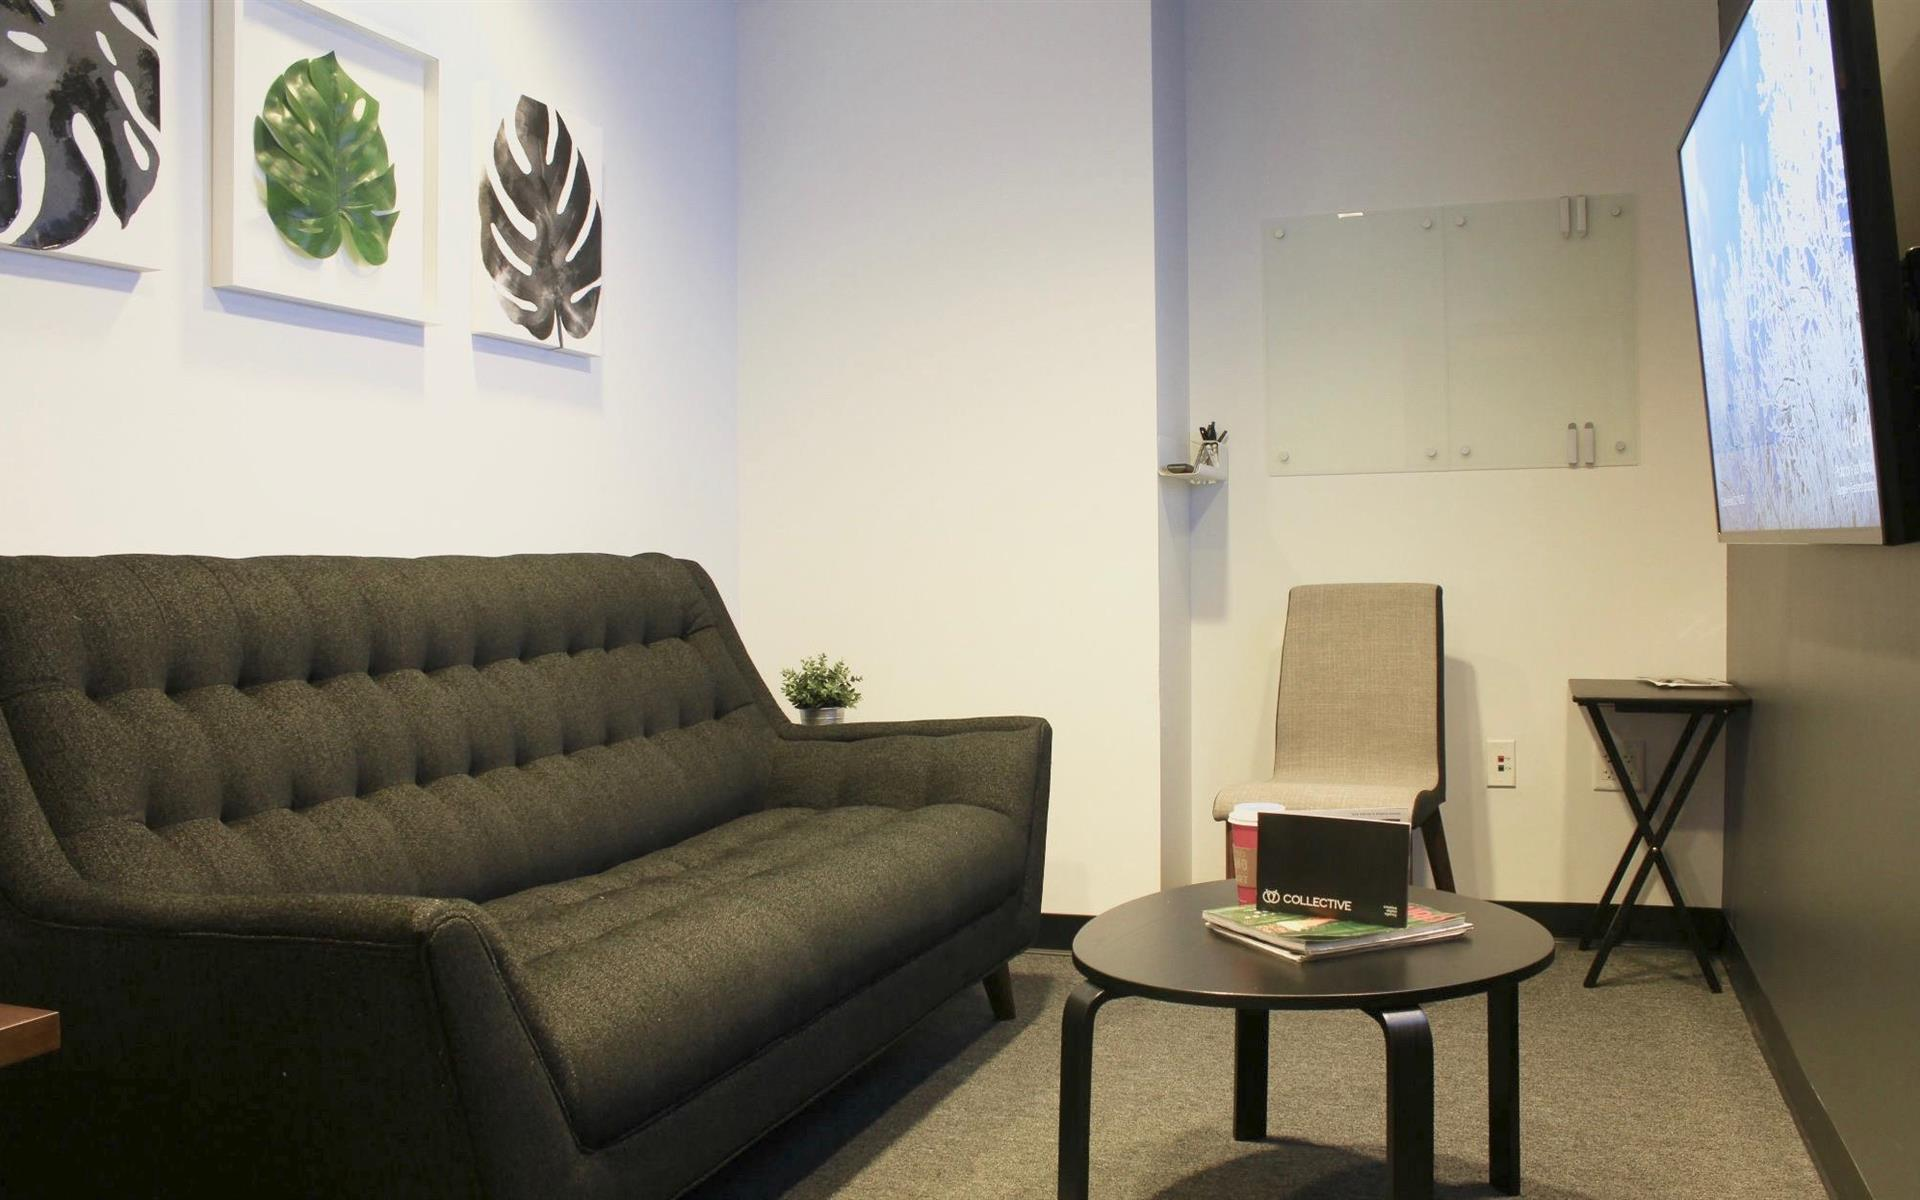 Collective Ventures Group LLC - Study Room